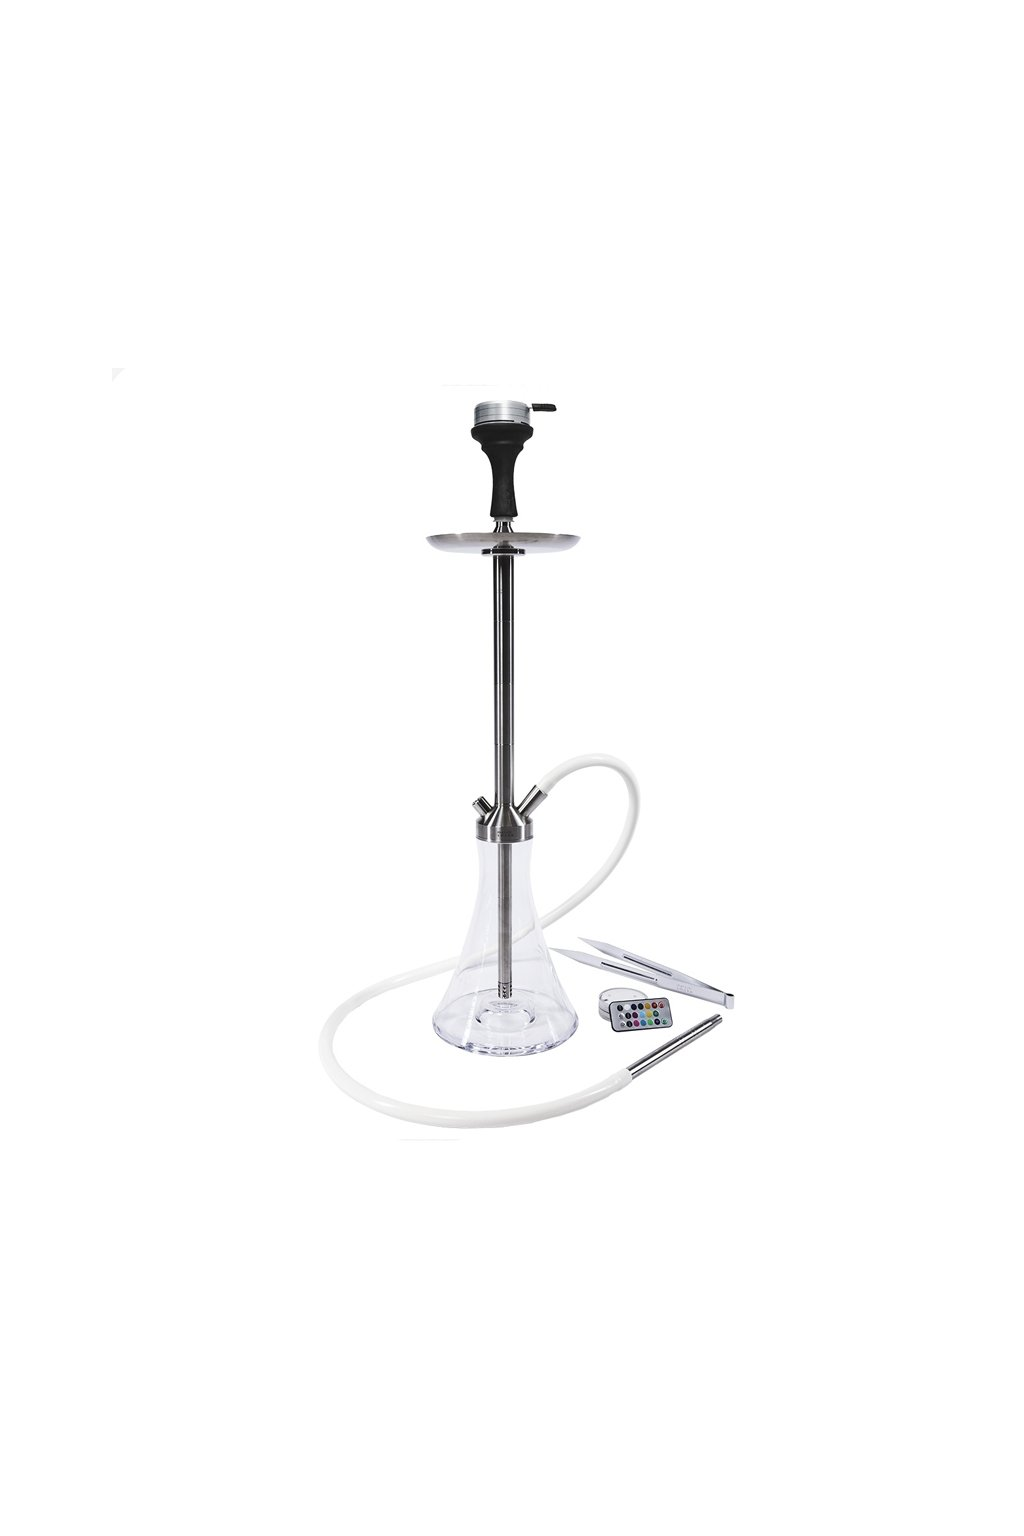 Hookah marvin vol. 2 SST - Full White